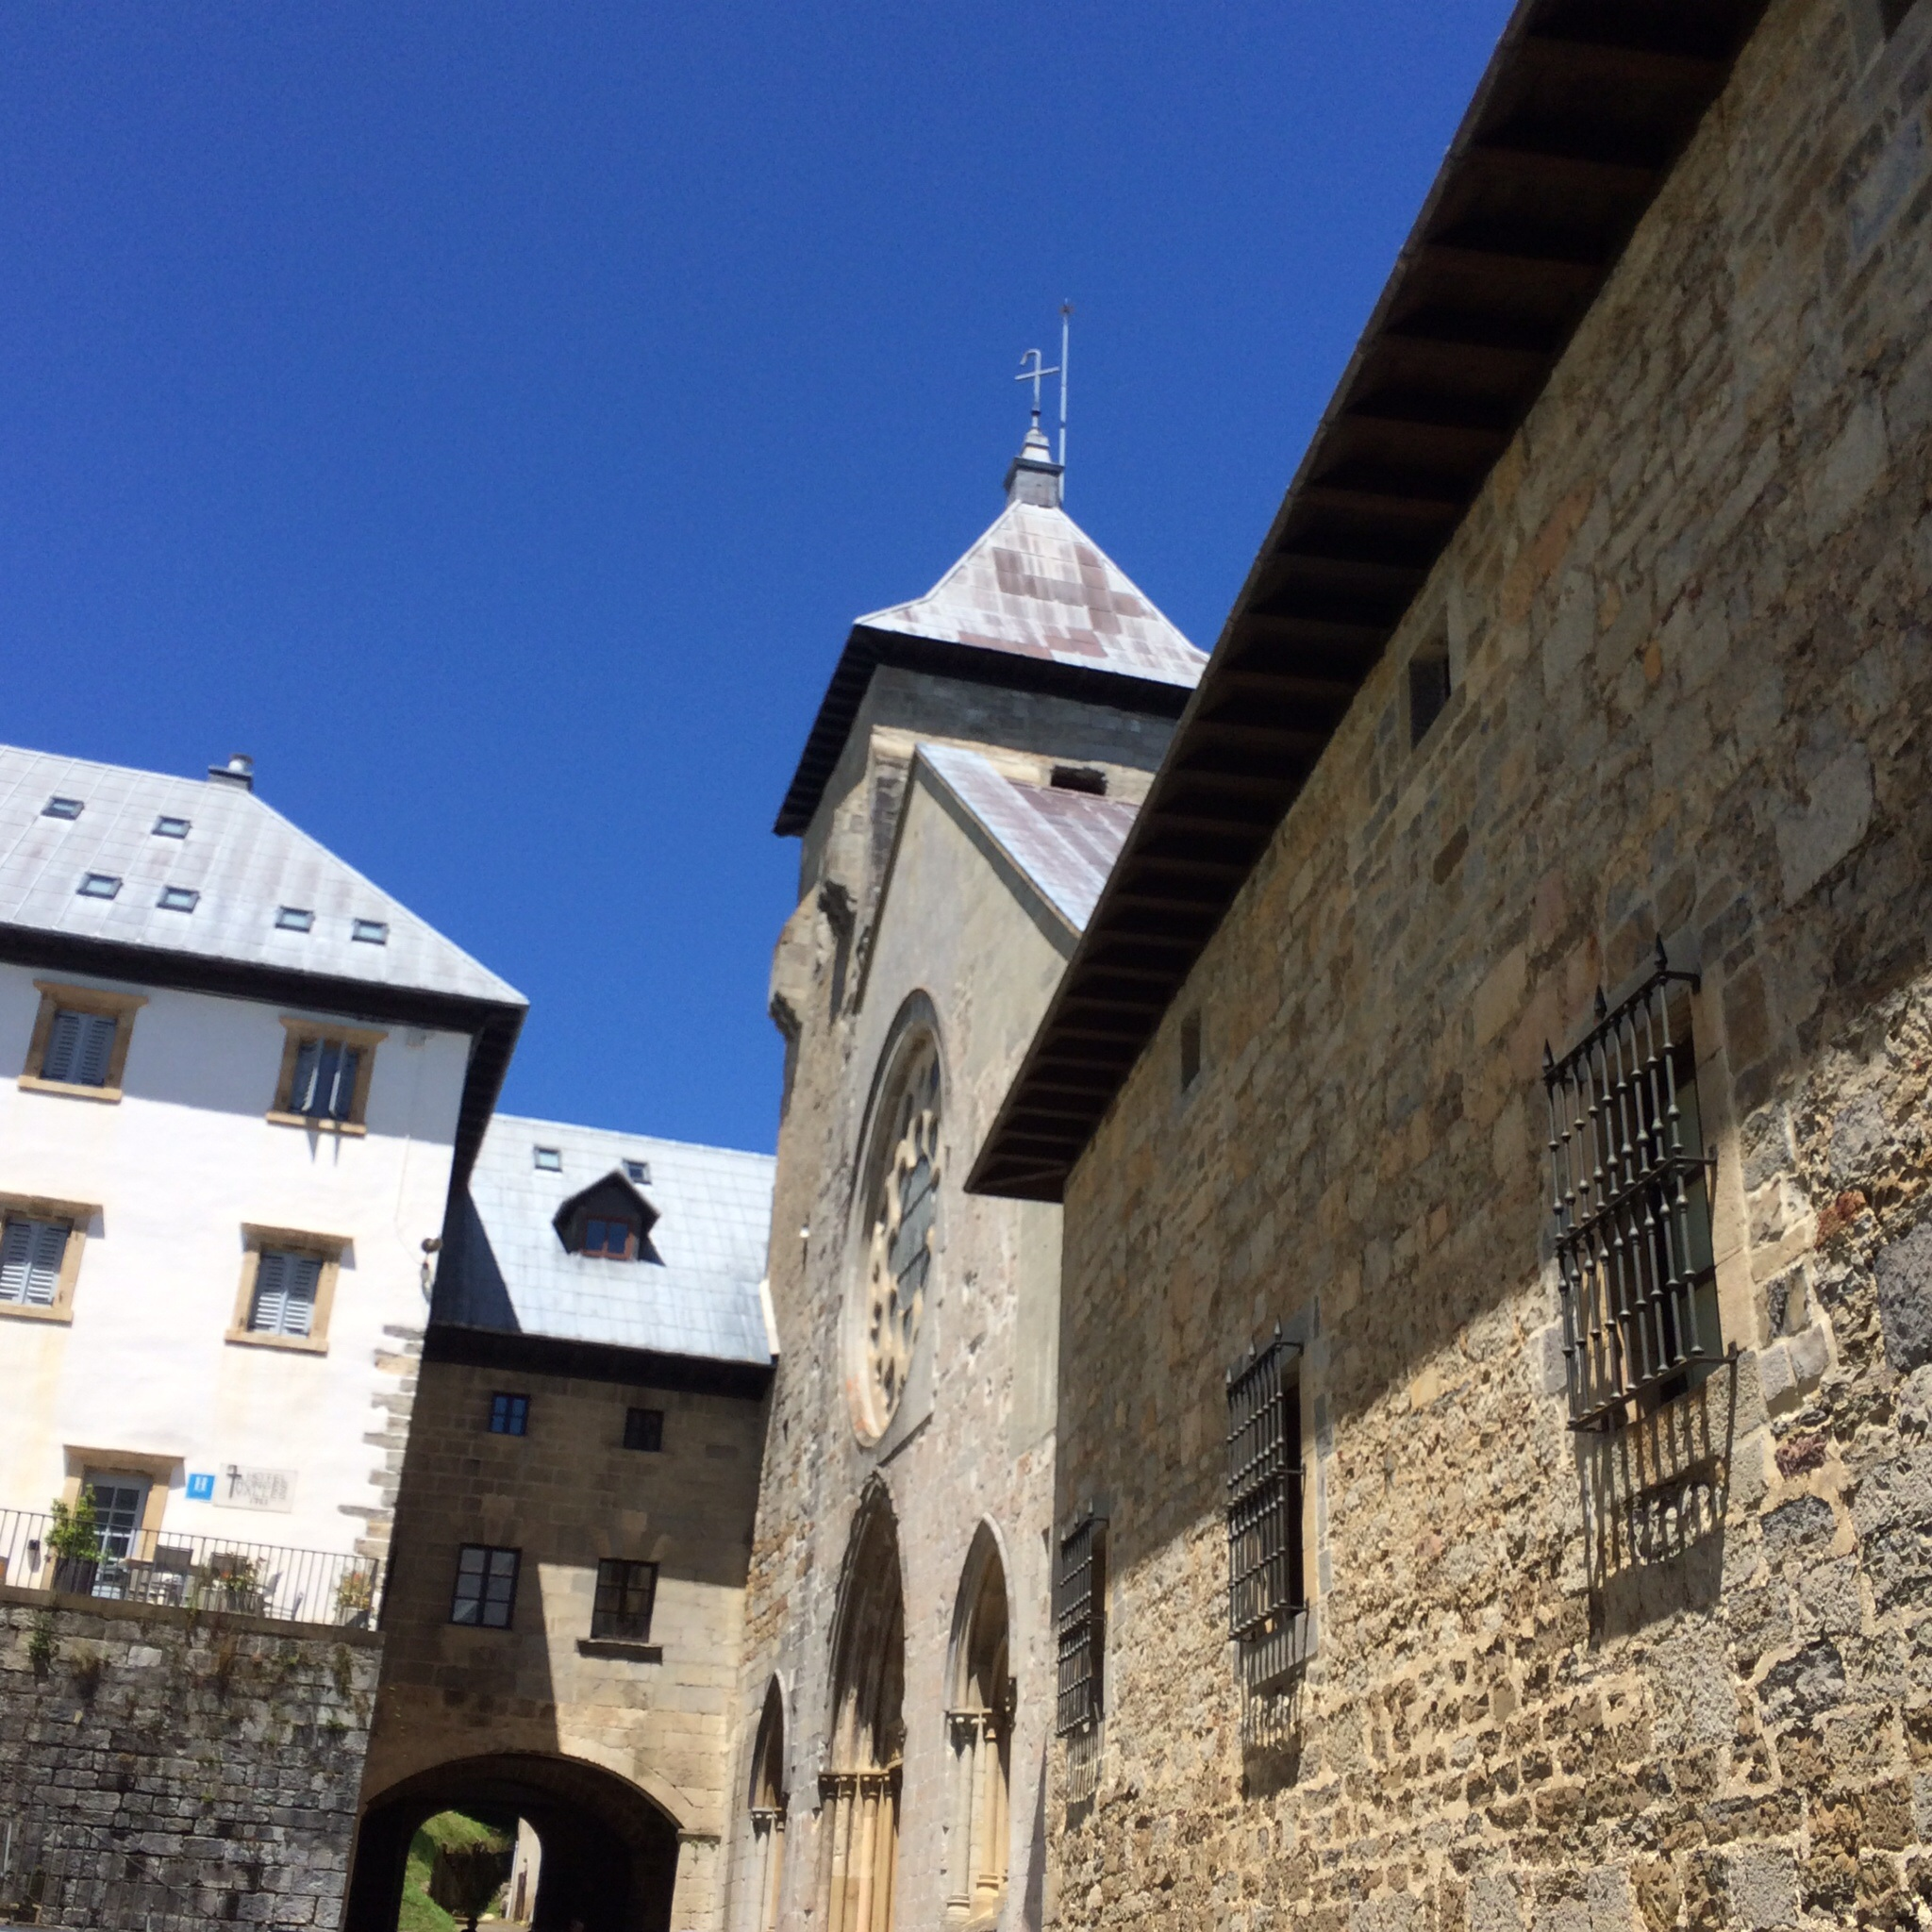 This Abbey has been a place of hospitality for pilgrims on the way to Santiago since the 10th century.